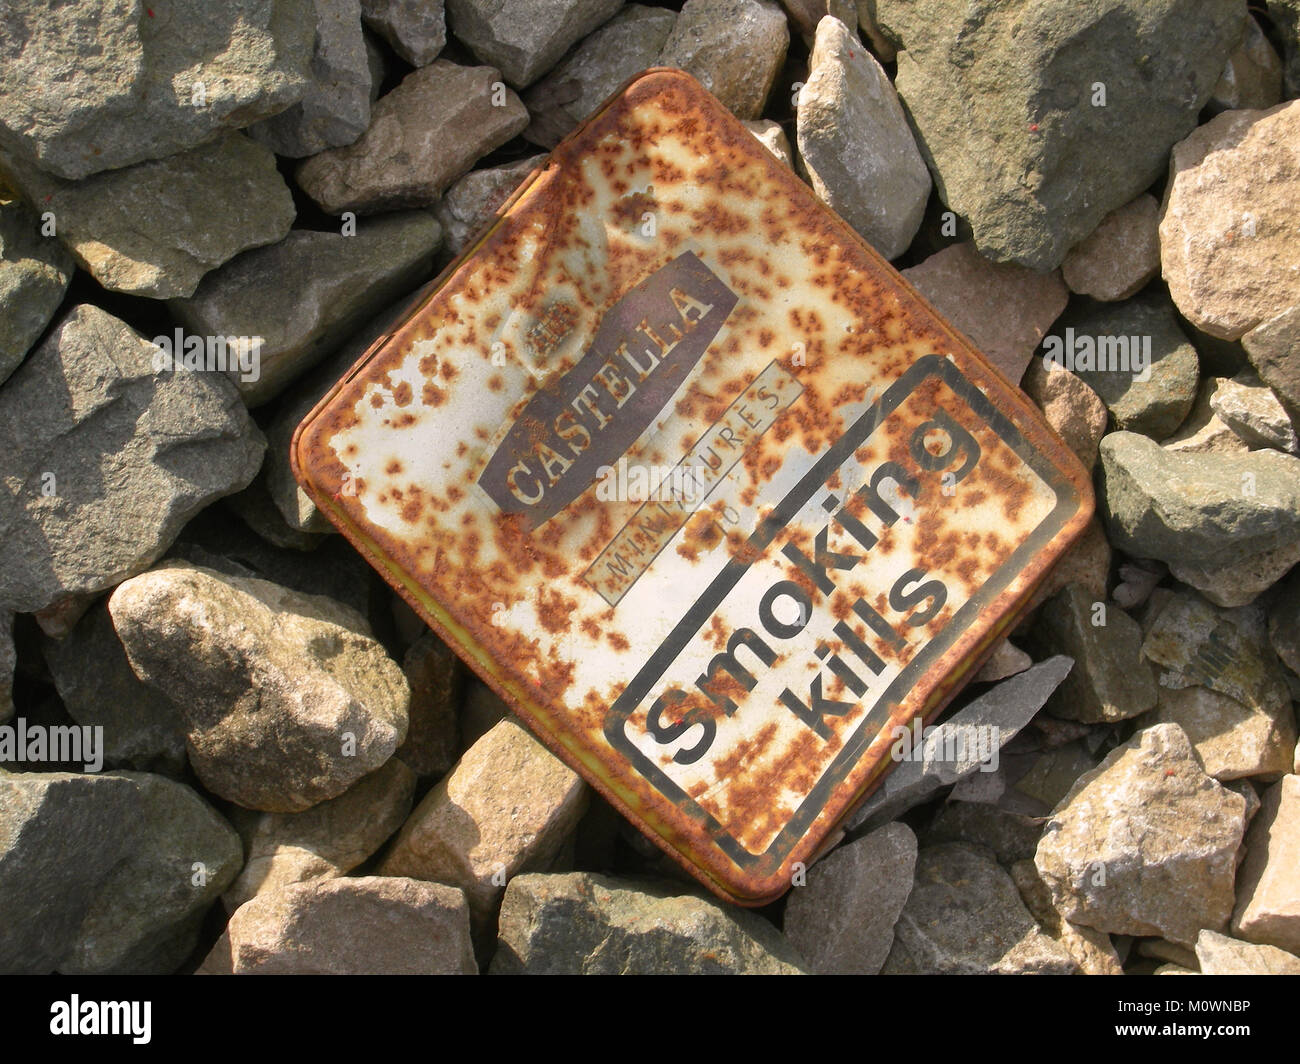 Rusty tin can for miniature cigars thrown away - Stock Image